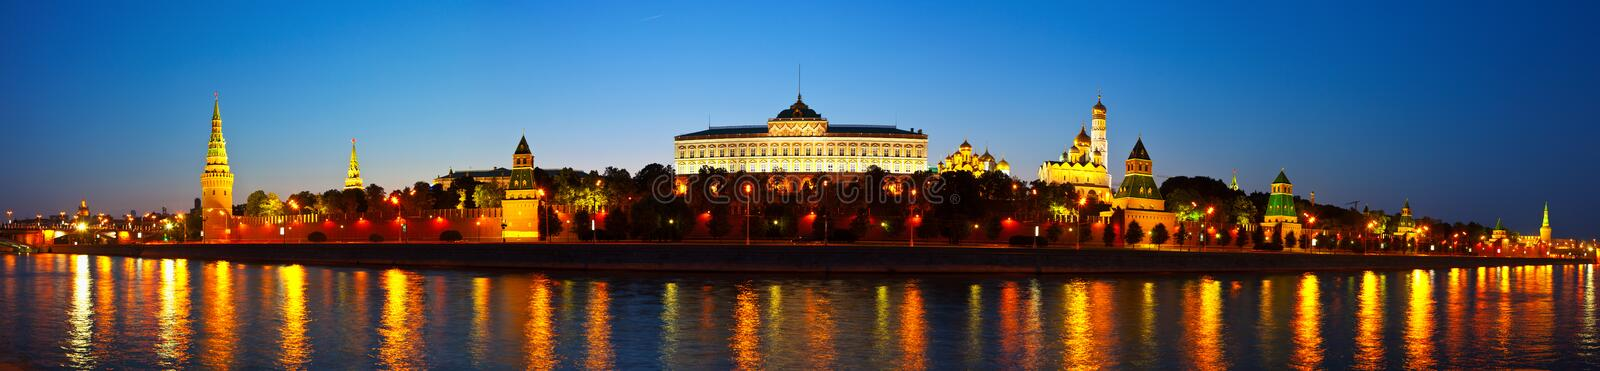 Download Panorama Of Moscow Kremlin In Night. Russia Stock Image - Image: 25857077